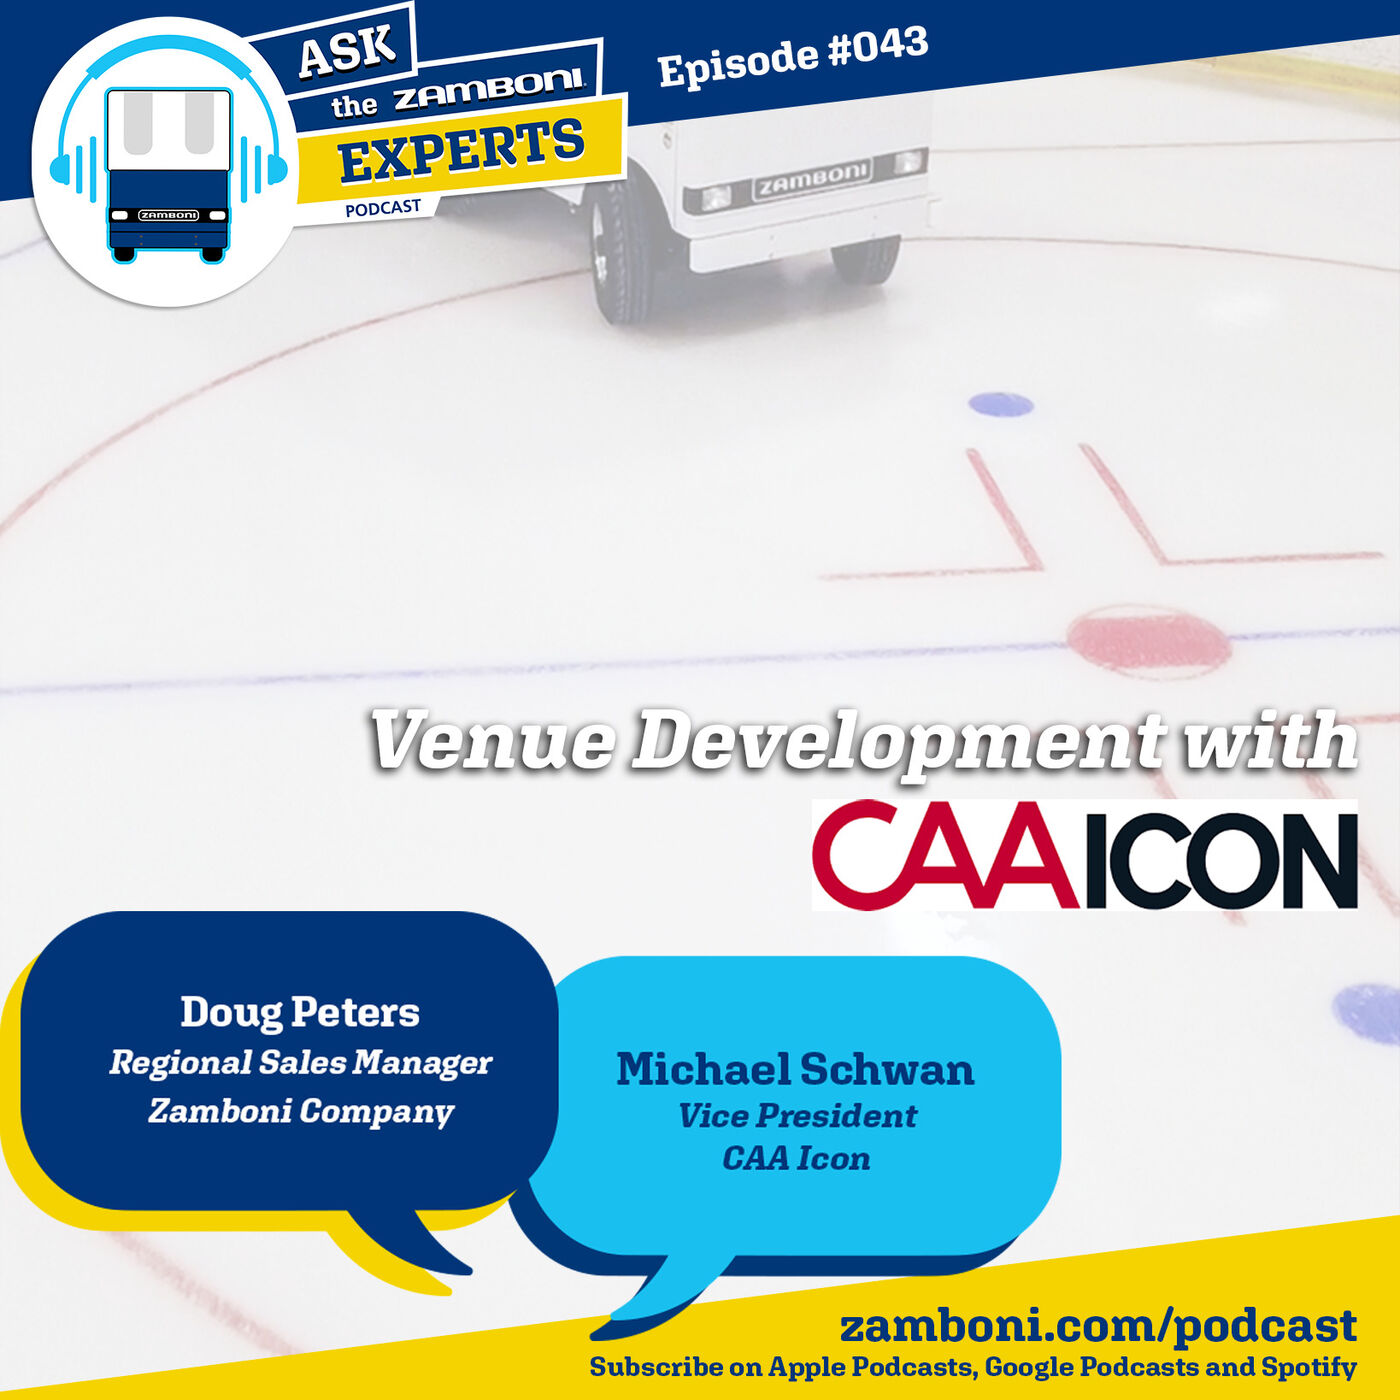 Episode #043: Venue Development with CAA ICON